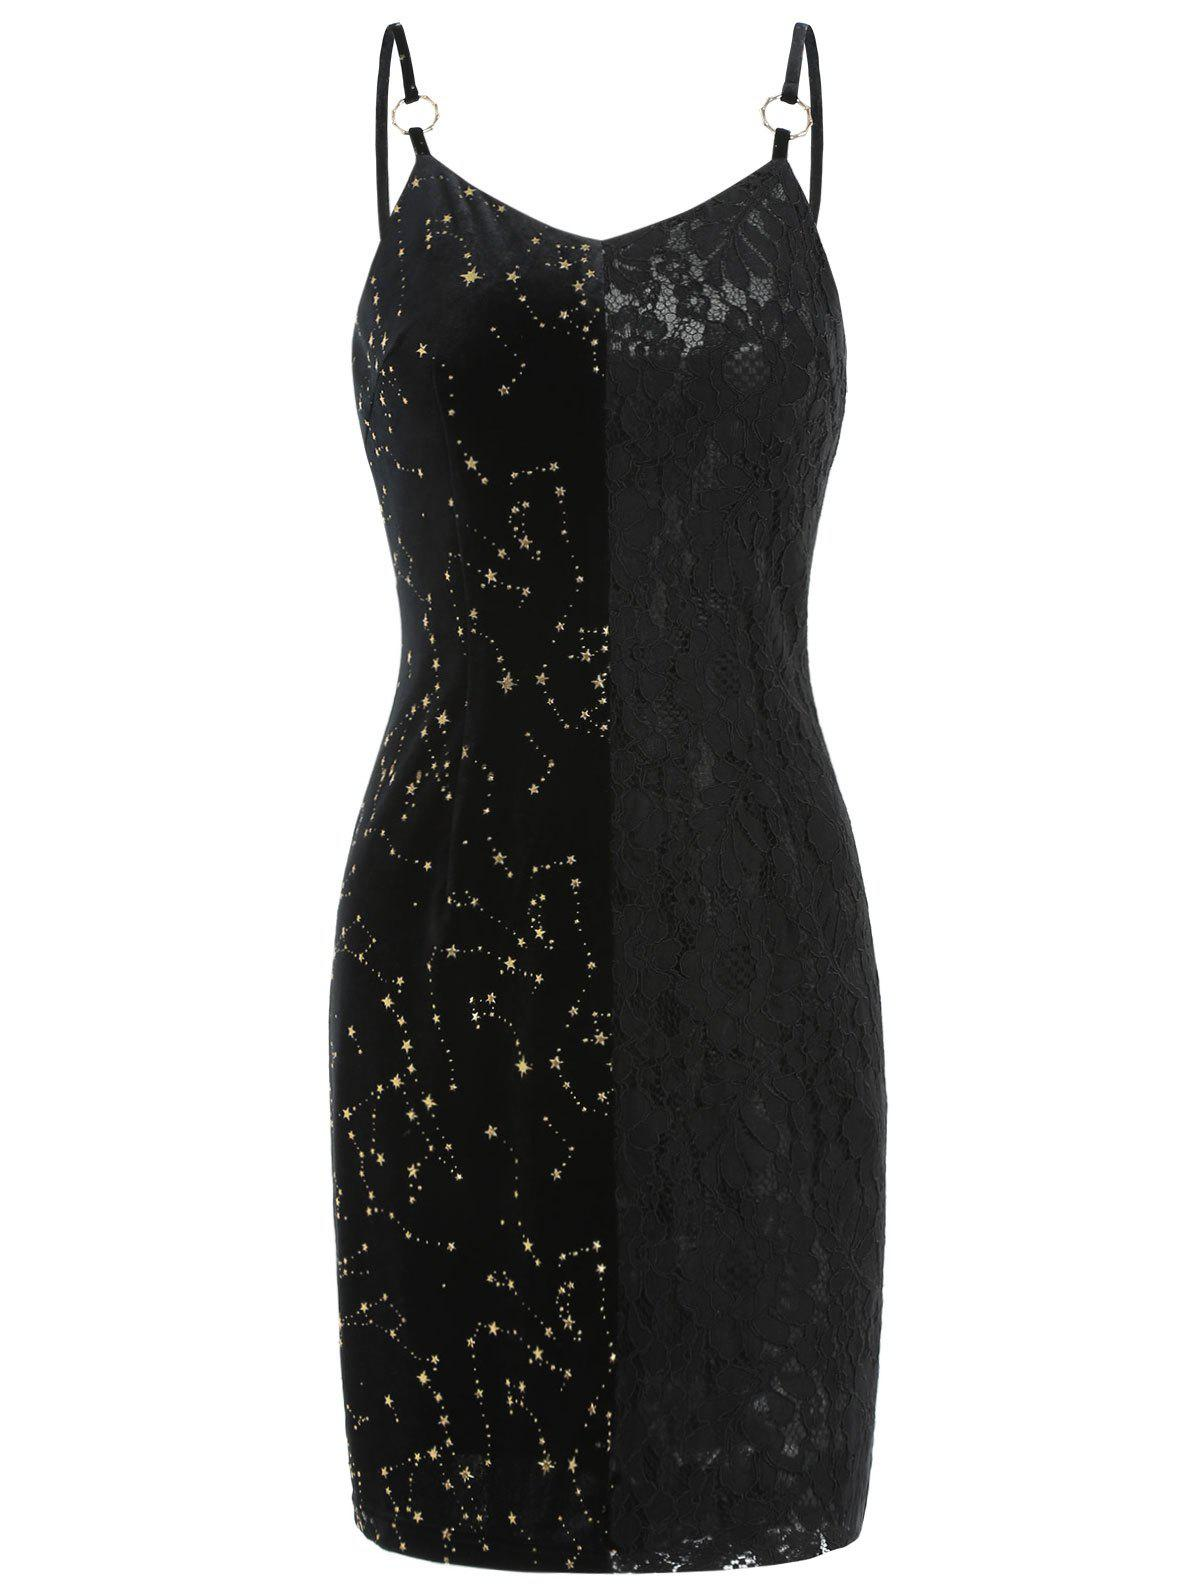 Velvet Lace Insert Star Mini Dress - BLACK S